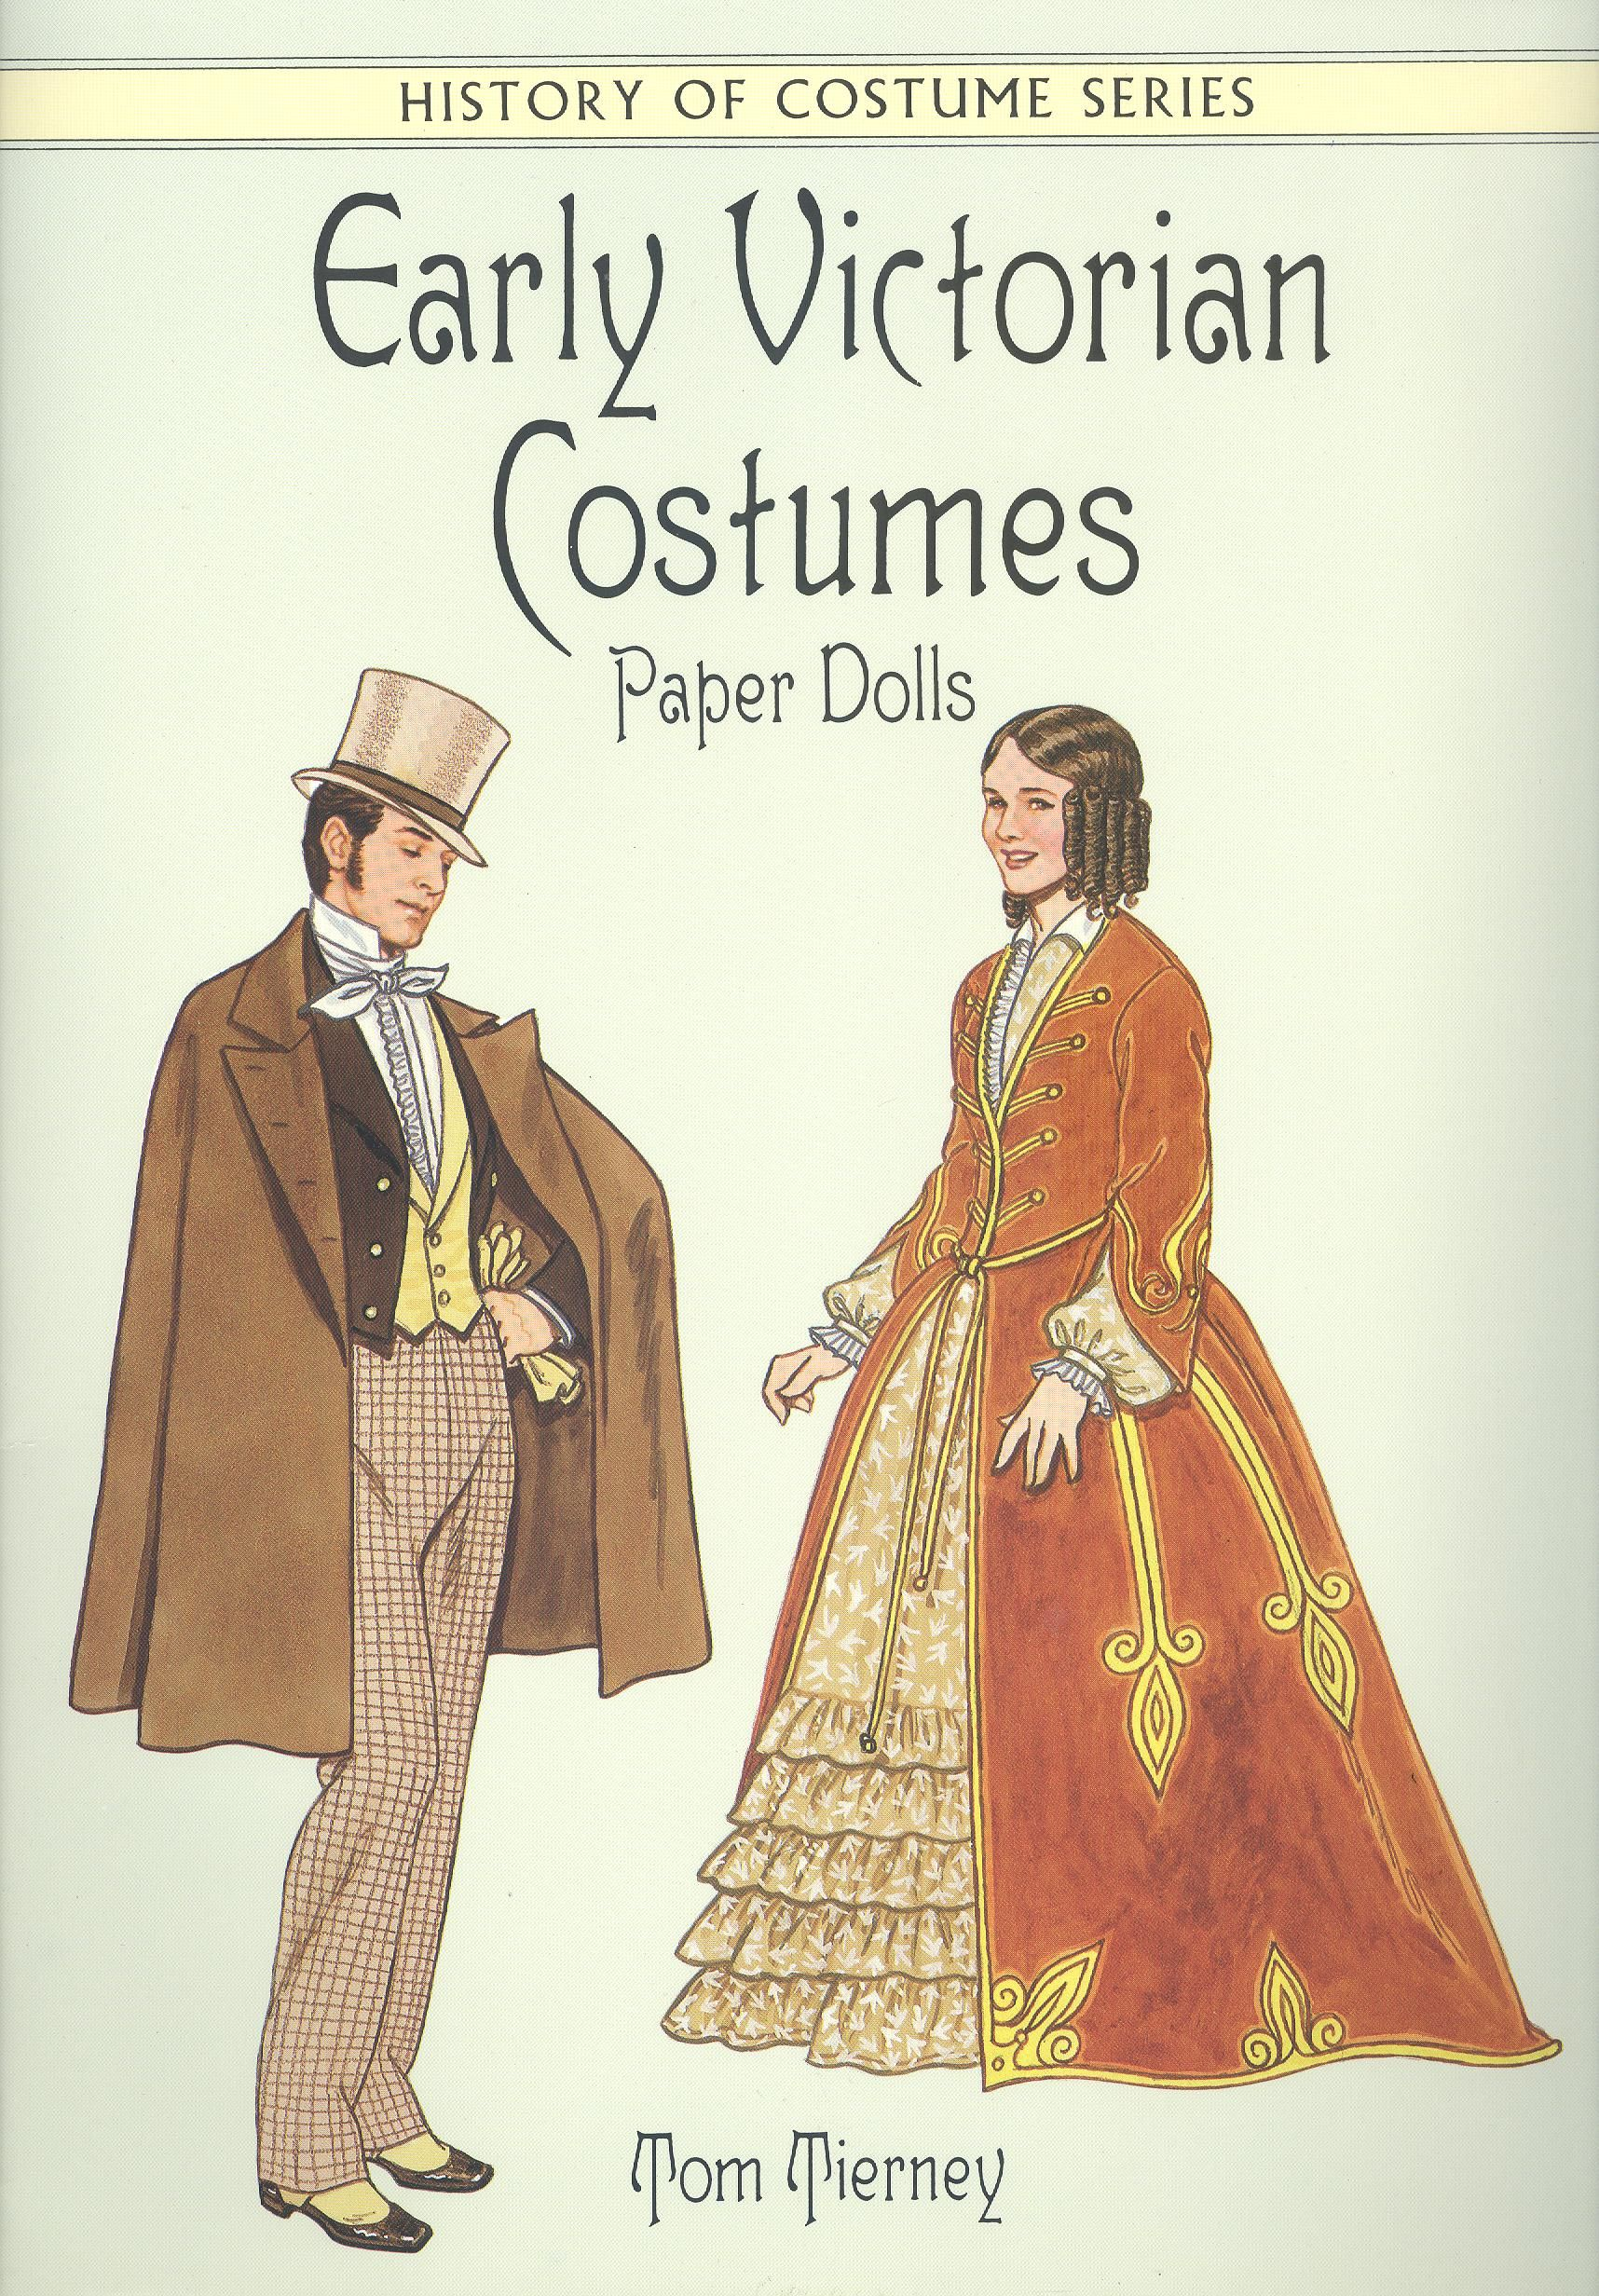 Tom tierney colonial fashions paper dolls - Early Victorian Costumes Paper Dolls By Tom Tierney